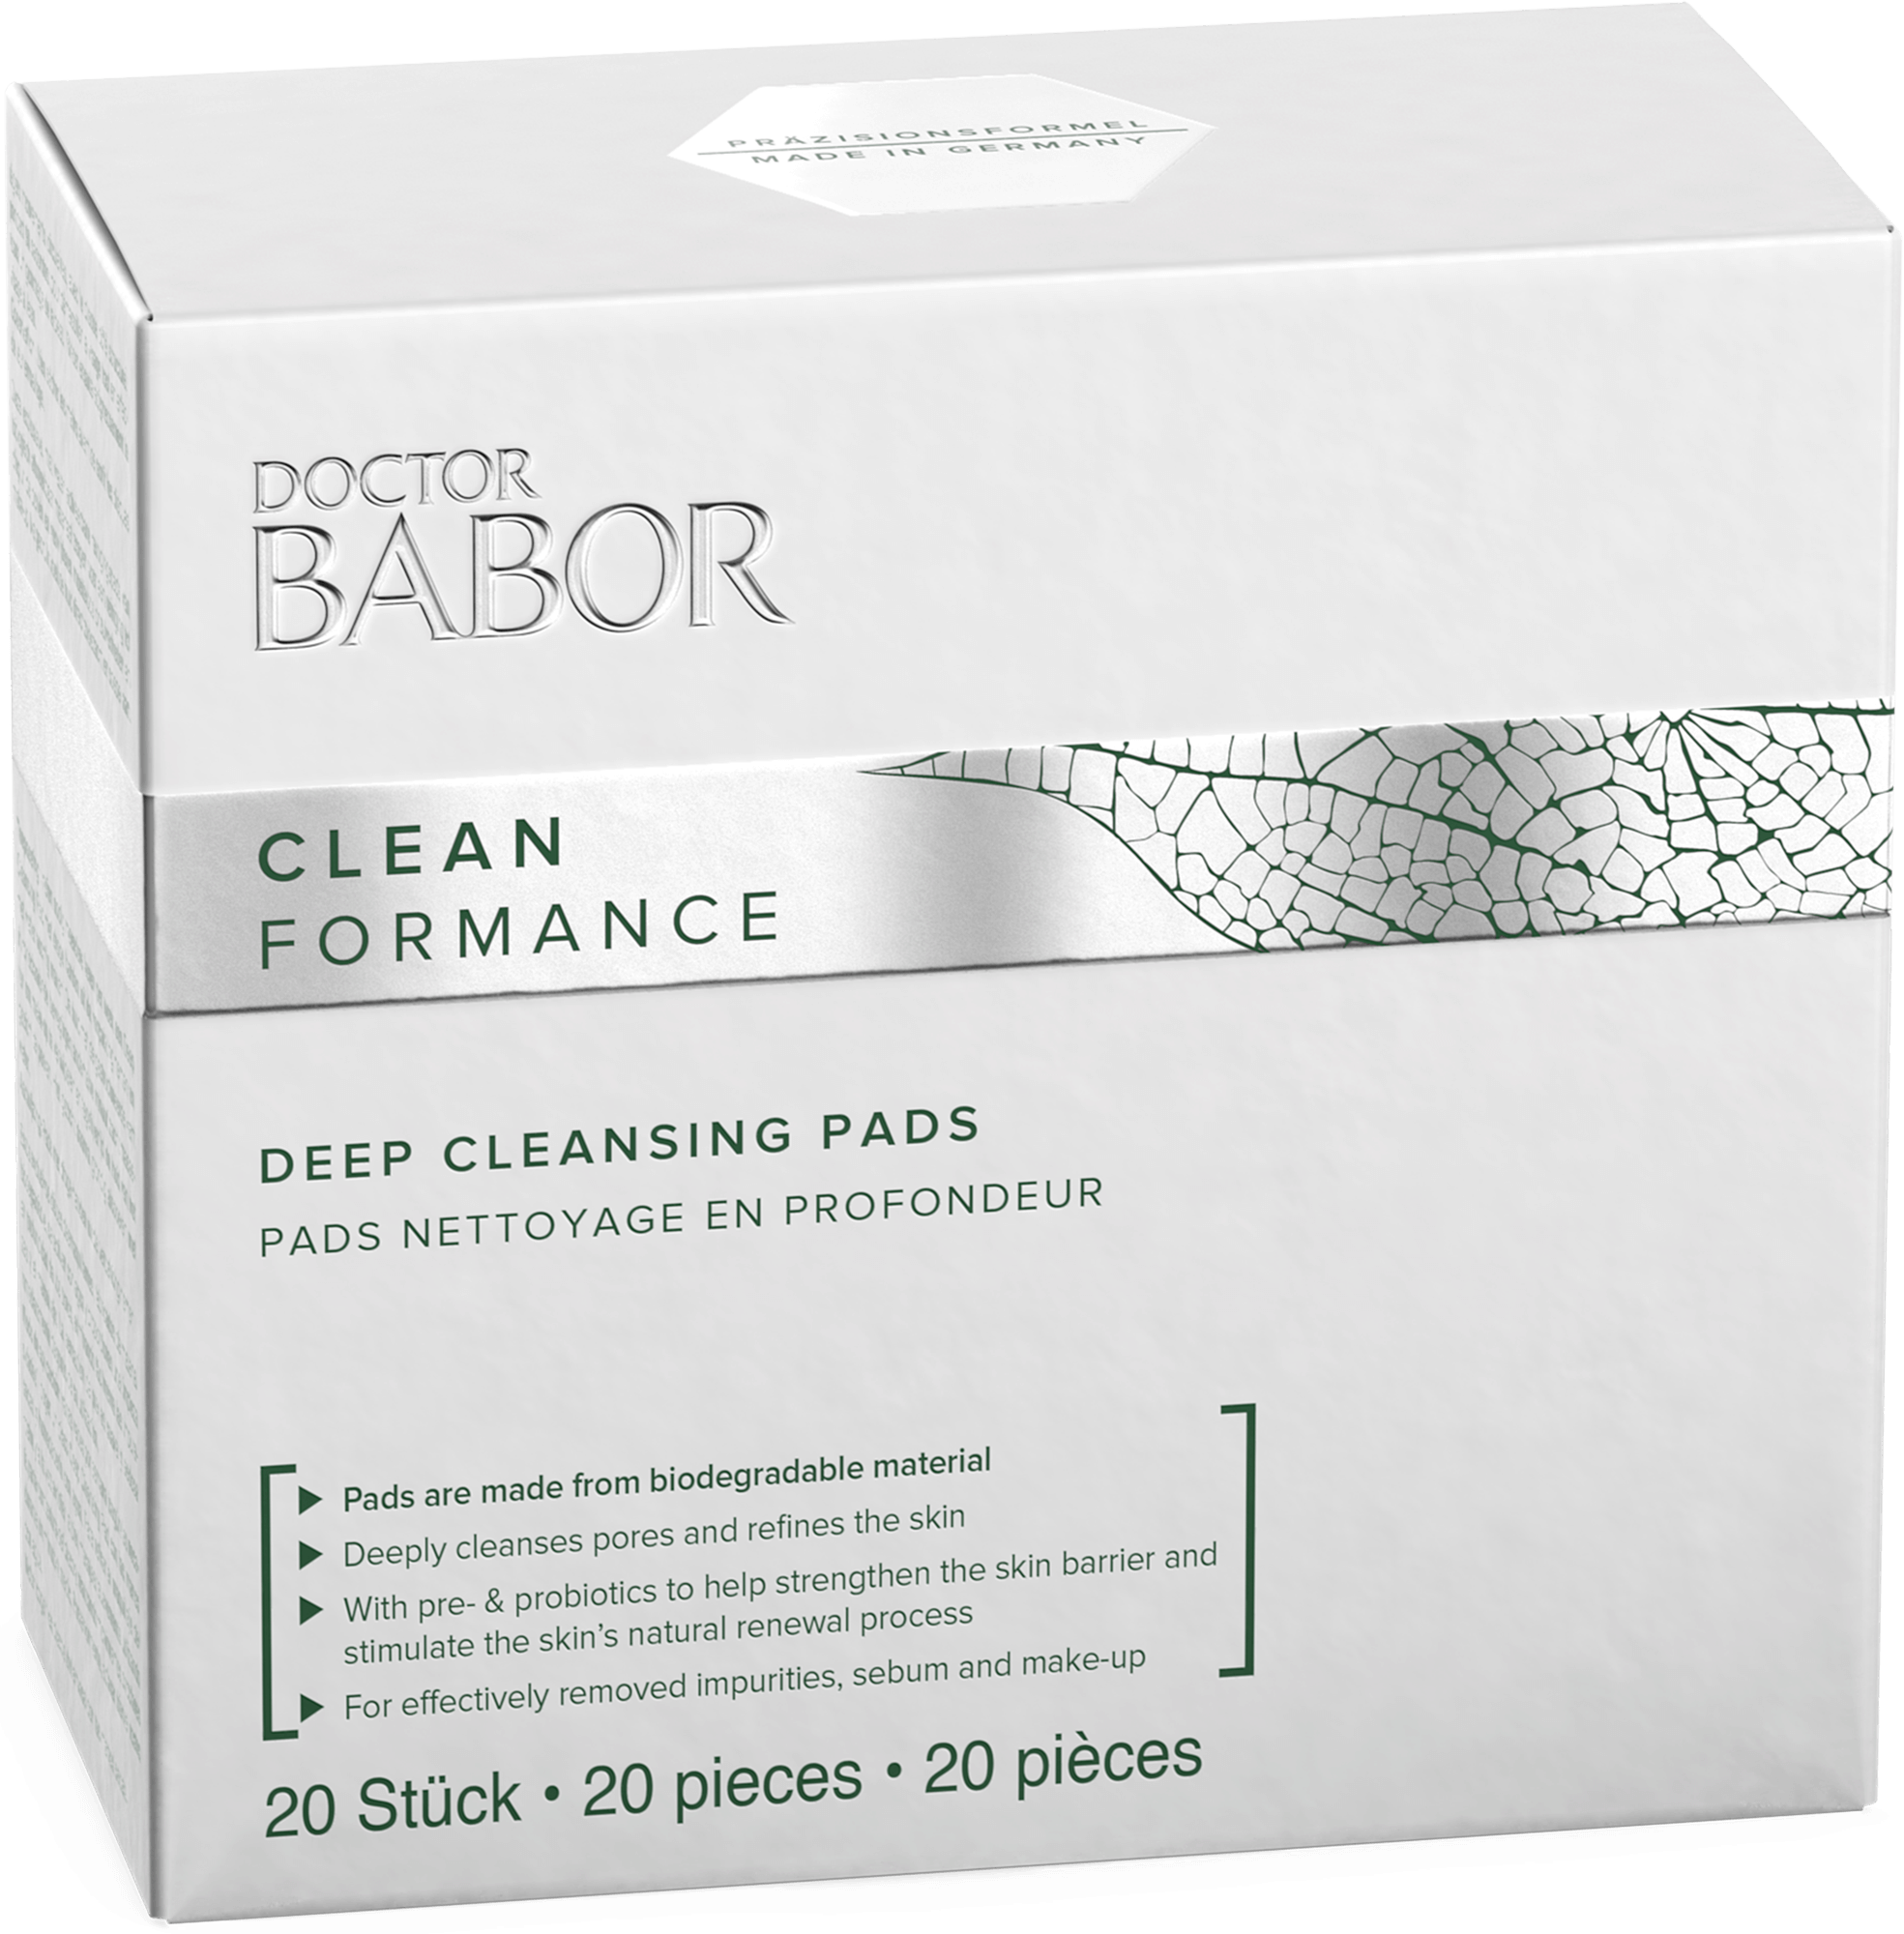 DOCTOR BABOR CLEANFORMANCE Deep Cleansing Pads 20 Stück